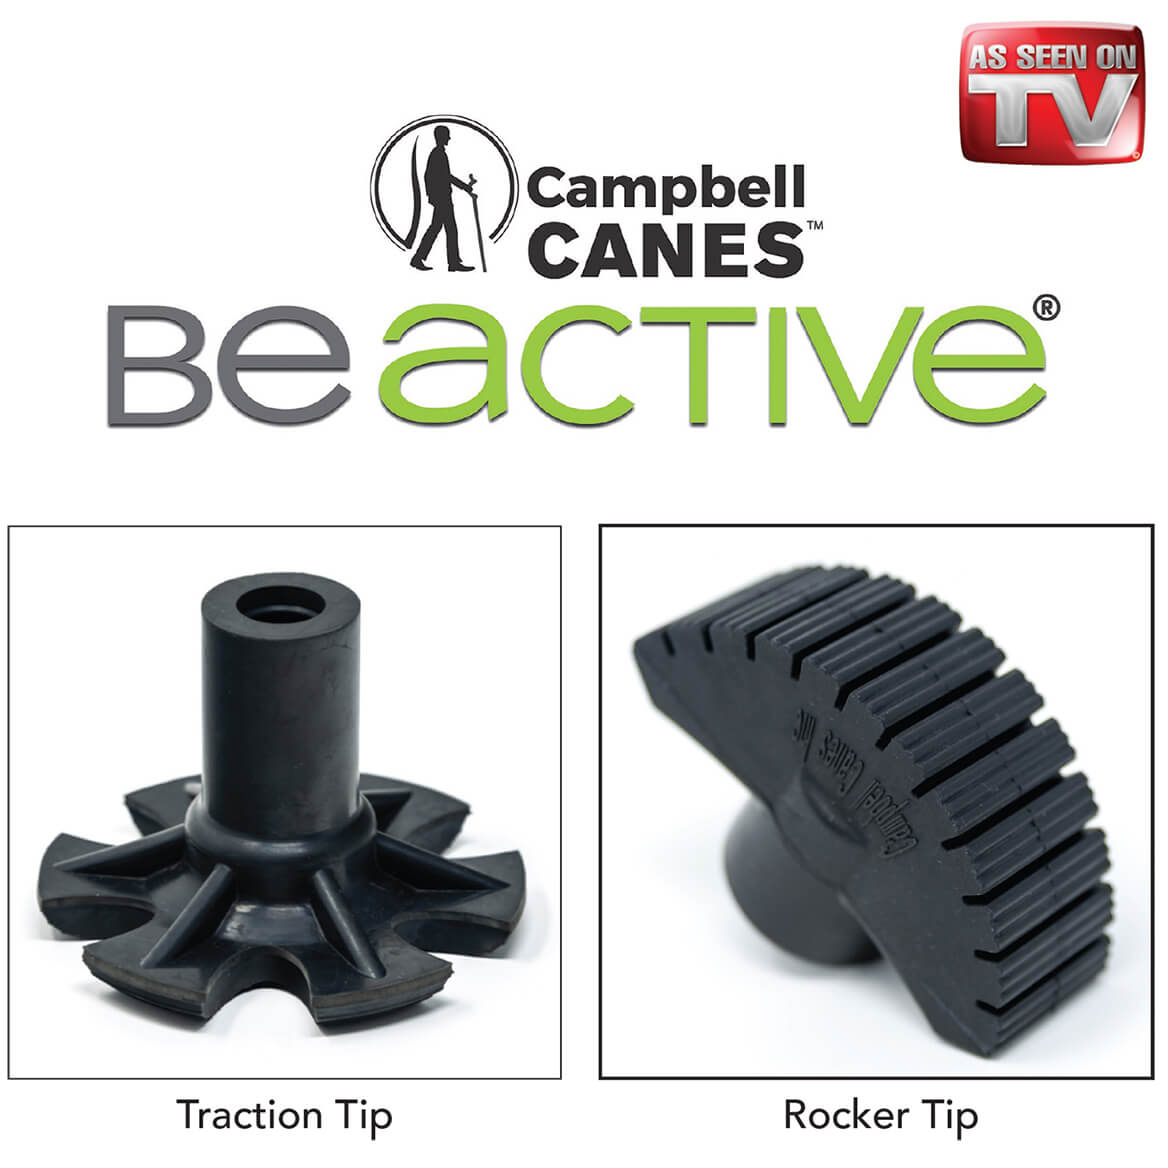 As Seen On TV Campbell Posture Cane Rocker Tip-369481